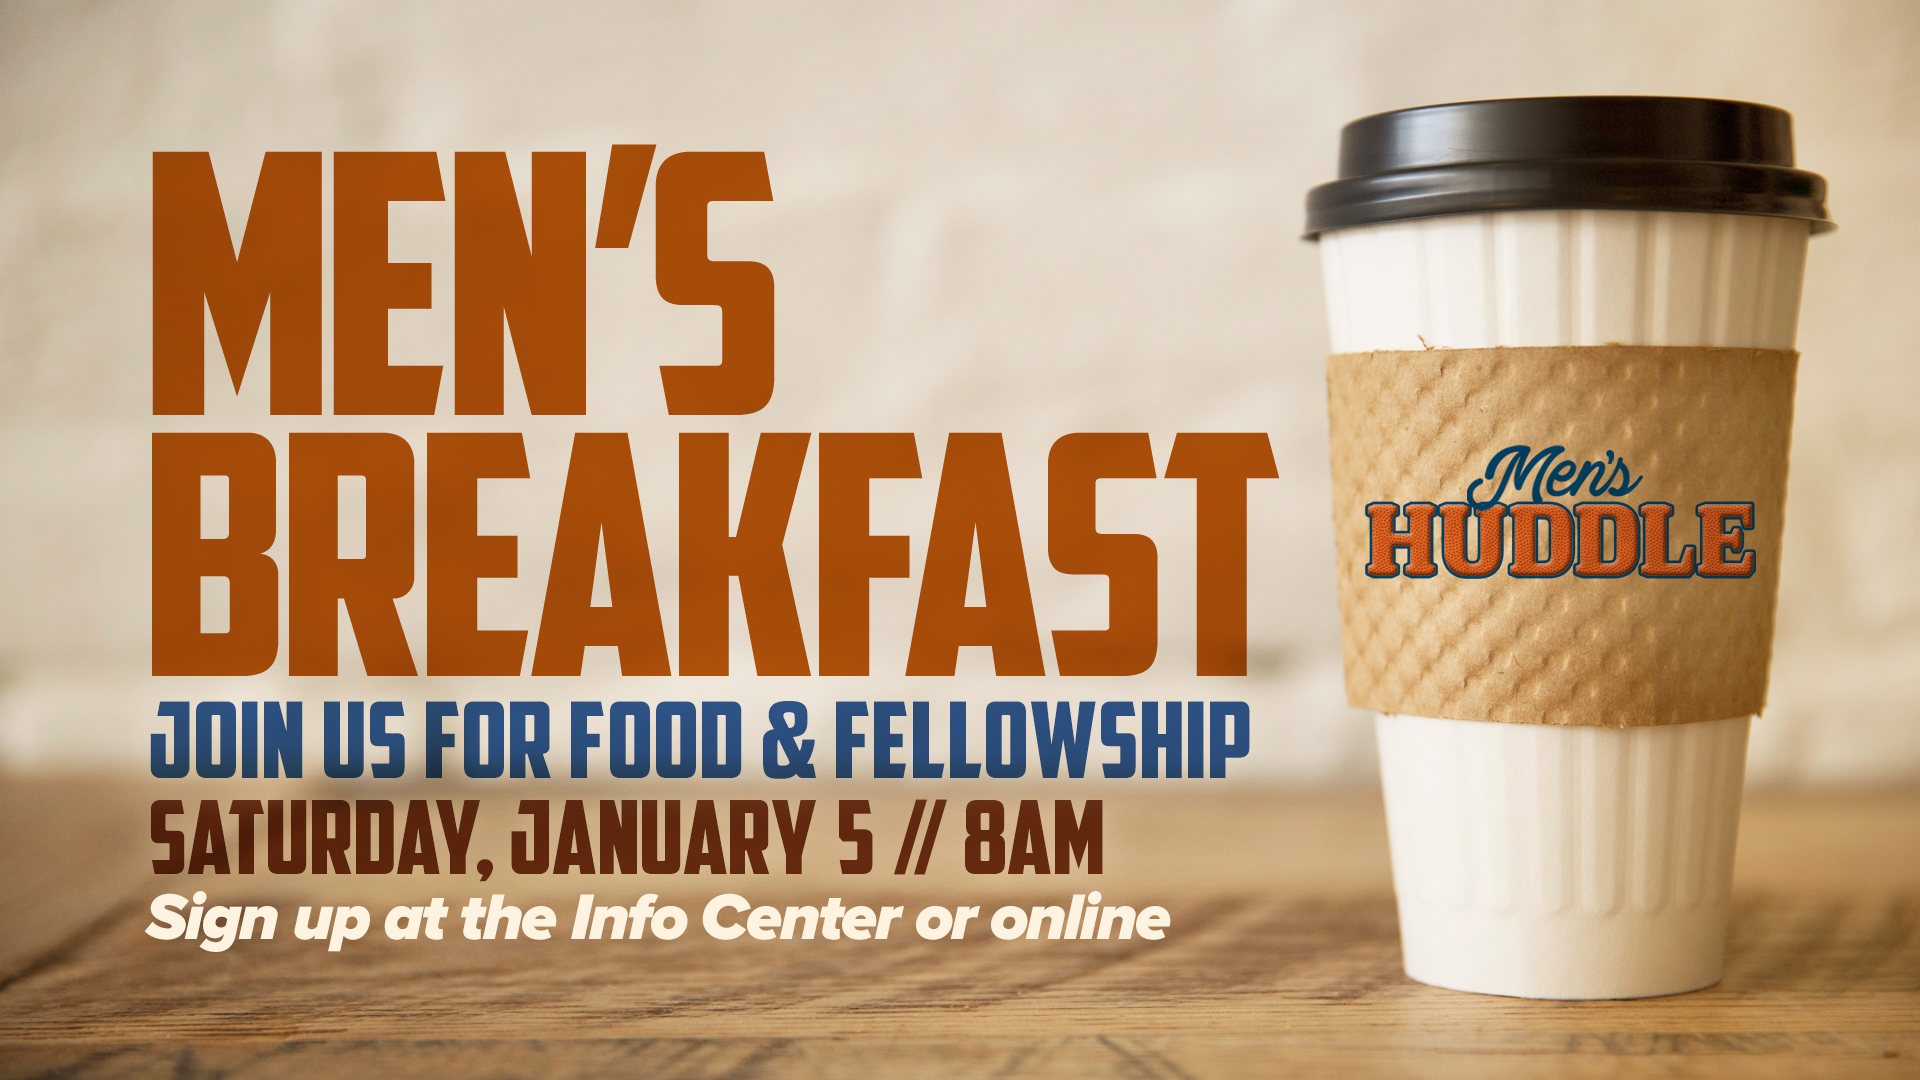 Men's Huddle Breakfast 1/5/19